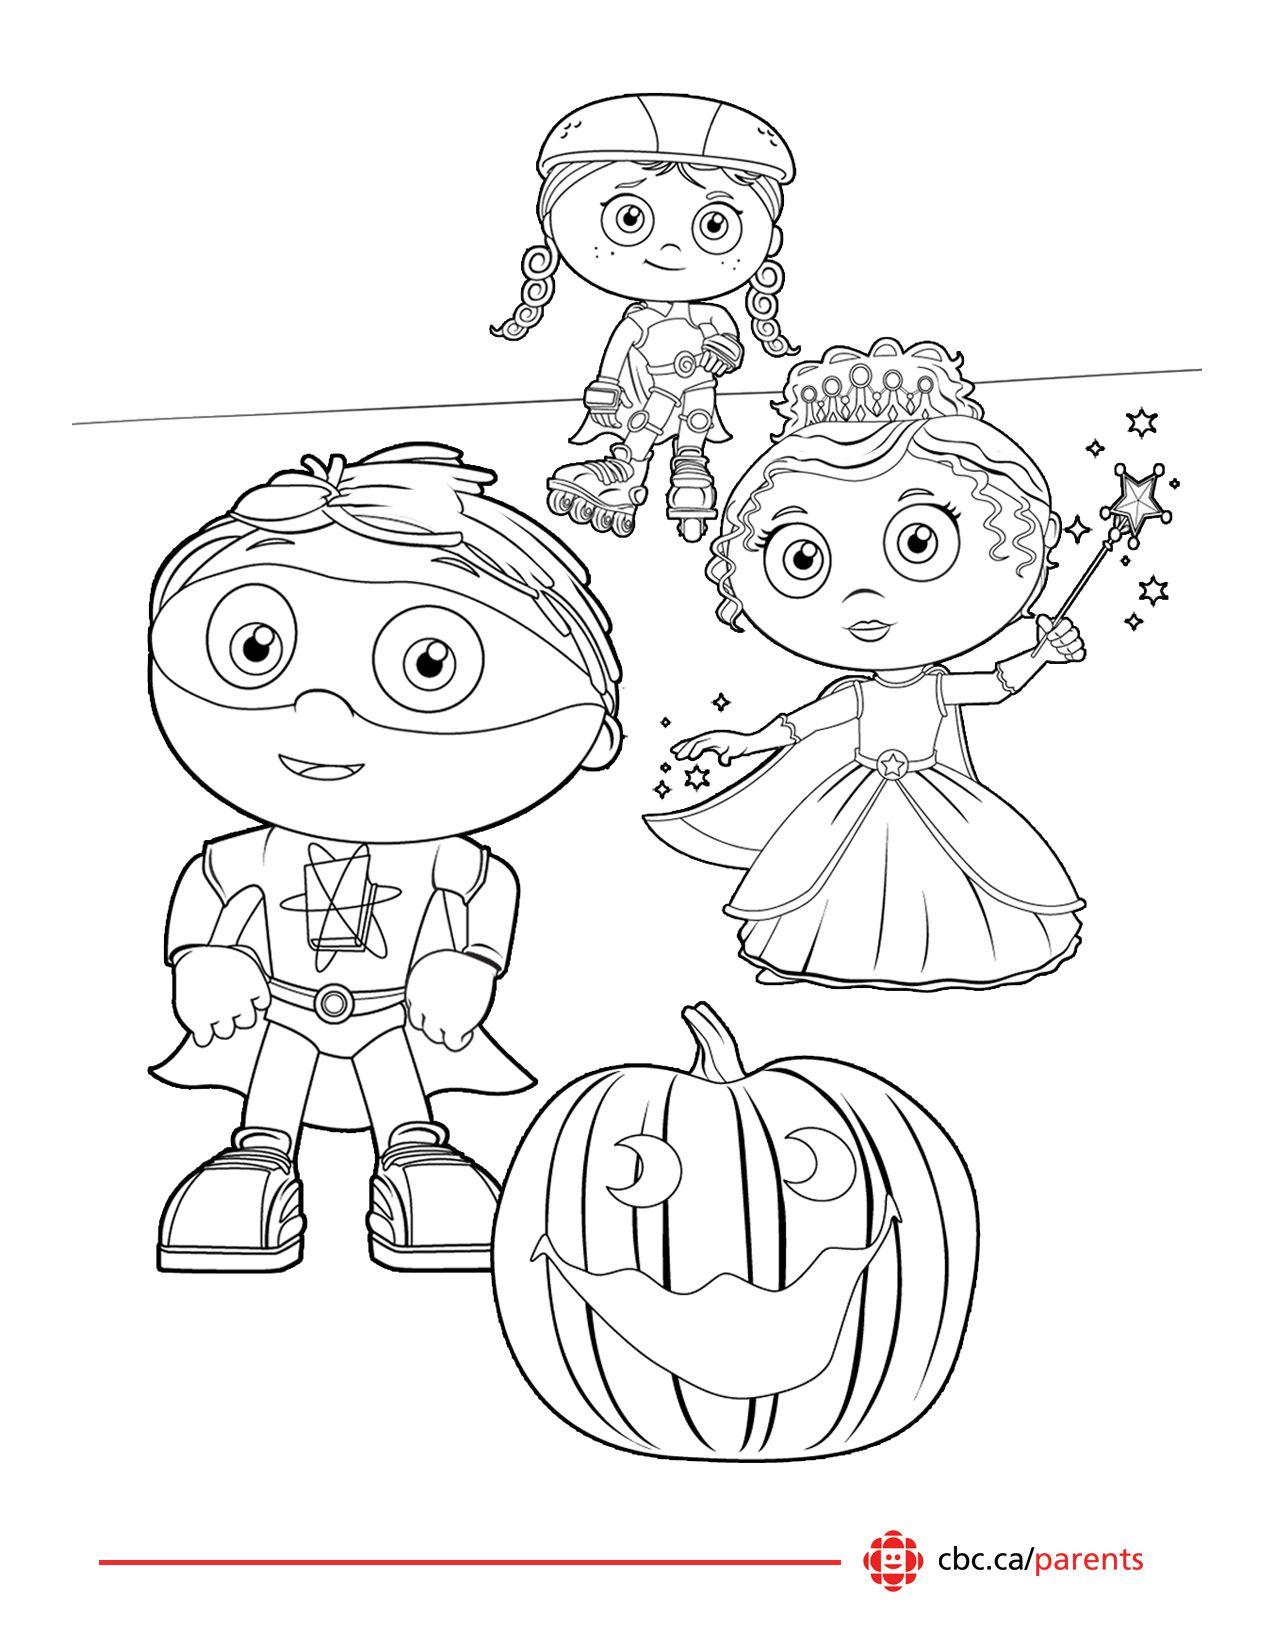 Printable Halloween Colouring Pages Cbc Parents Halloween Coloring Pages Free Halloween Coloring Pages Halloween Coloring